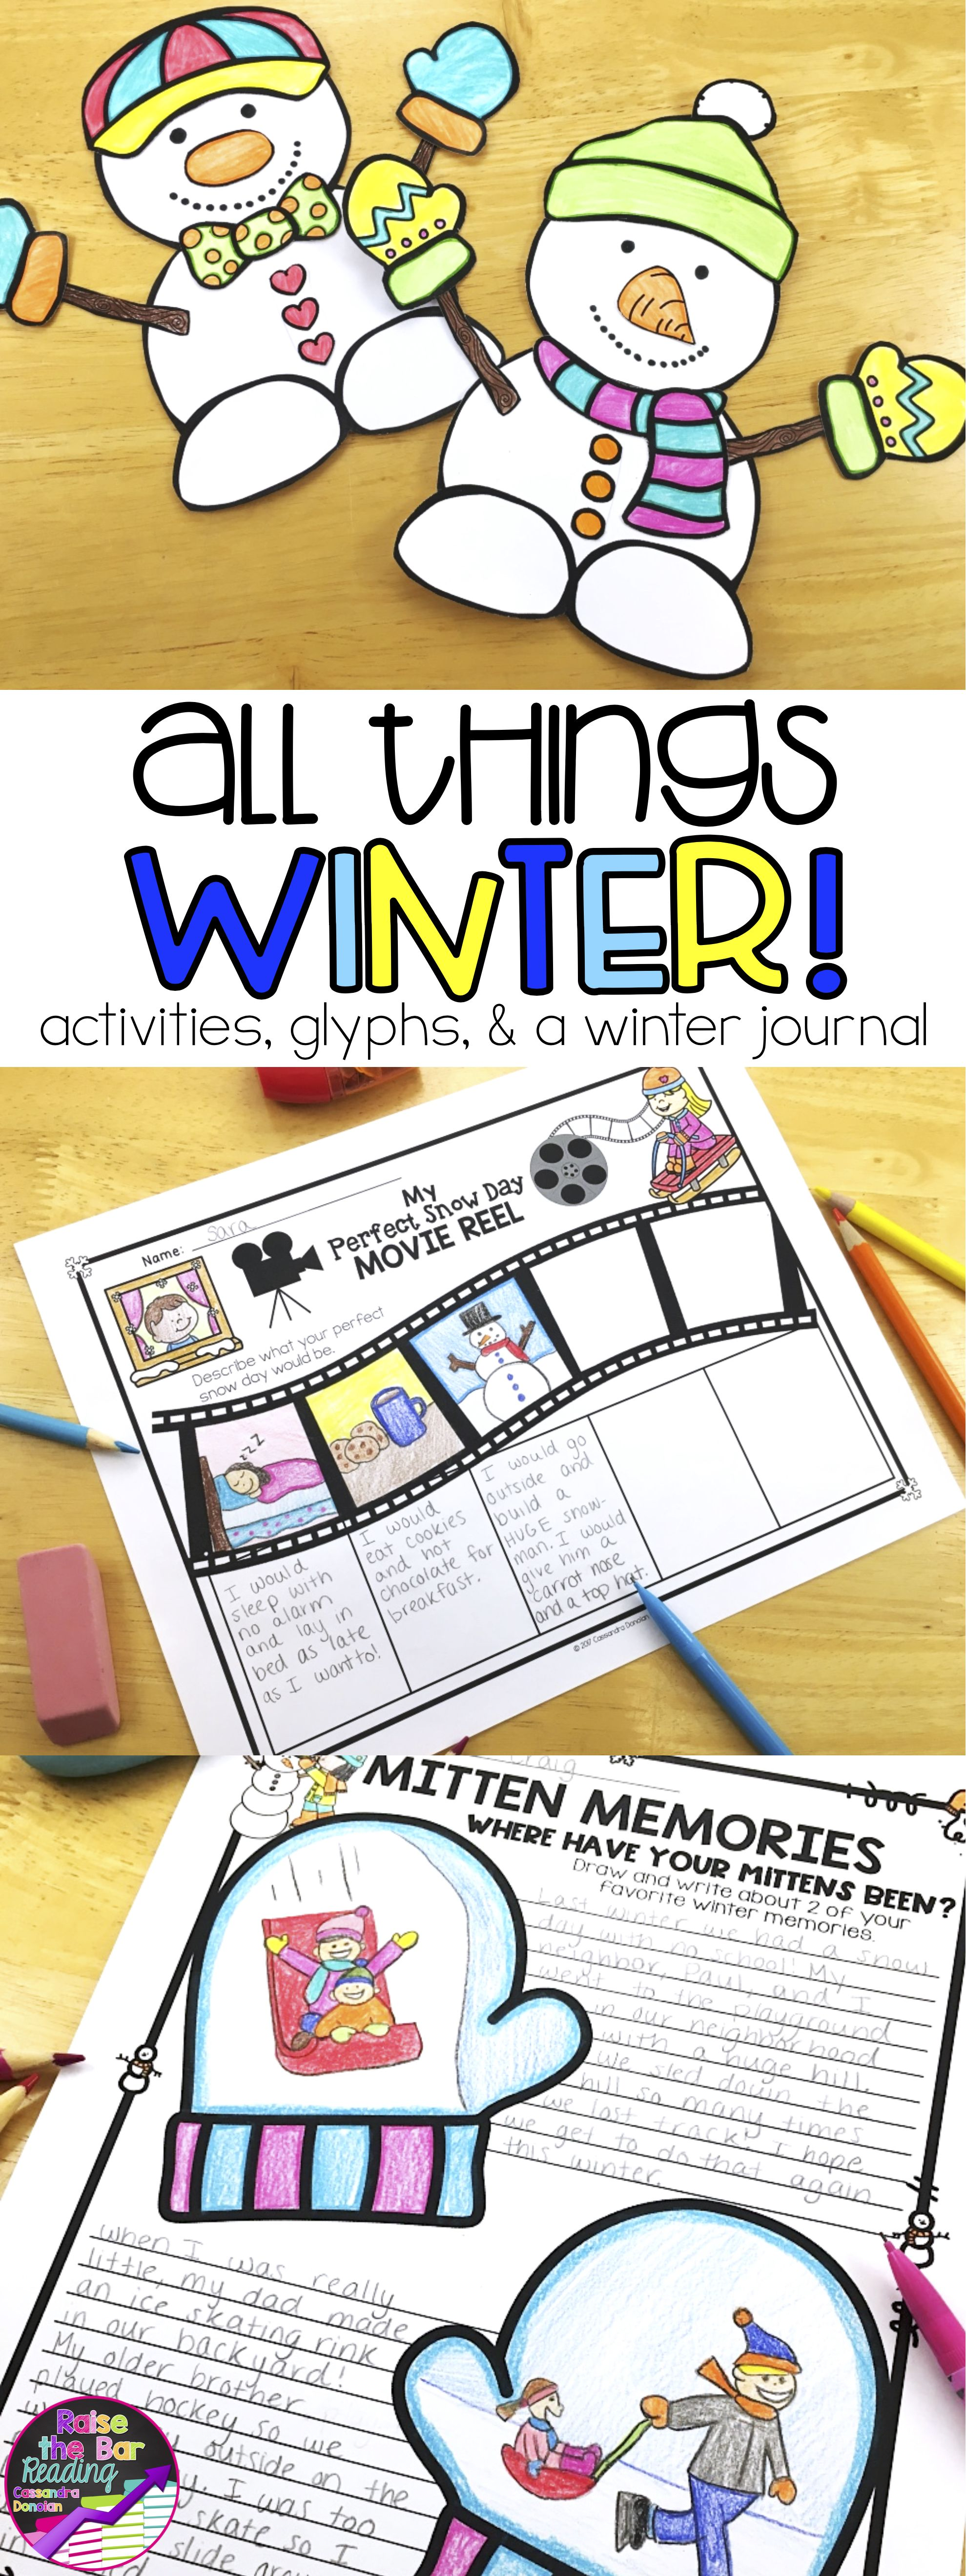 Winter Activities Winter Glyphs Winter Writing Prompts Winter Journal